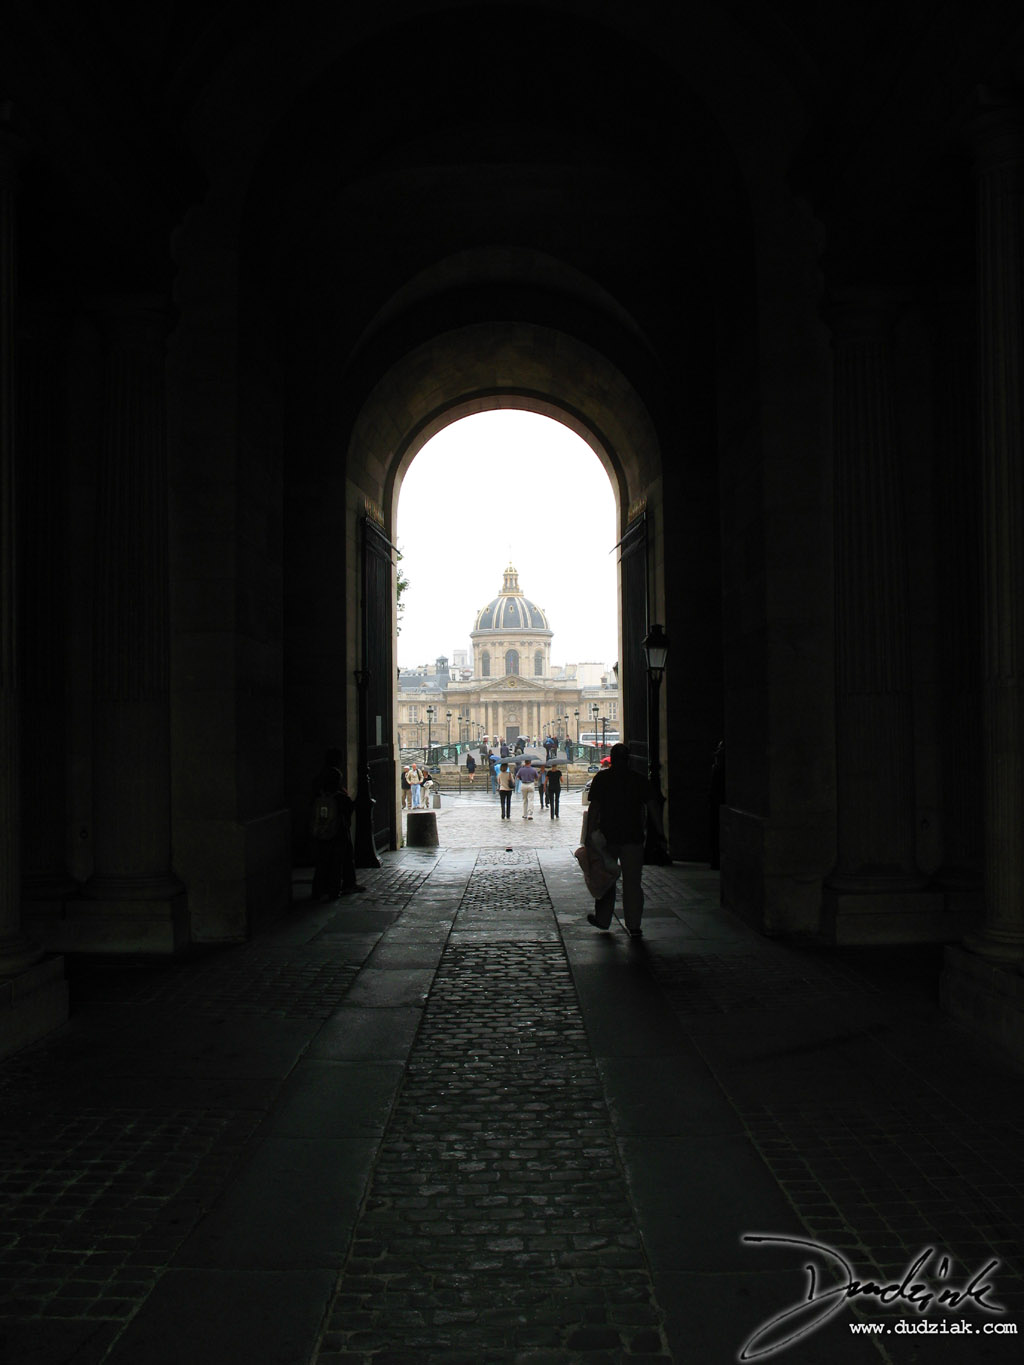 Institut de France,  paris,  French Institute,  Institue of France